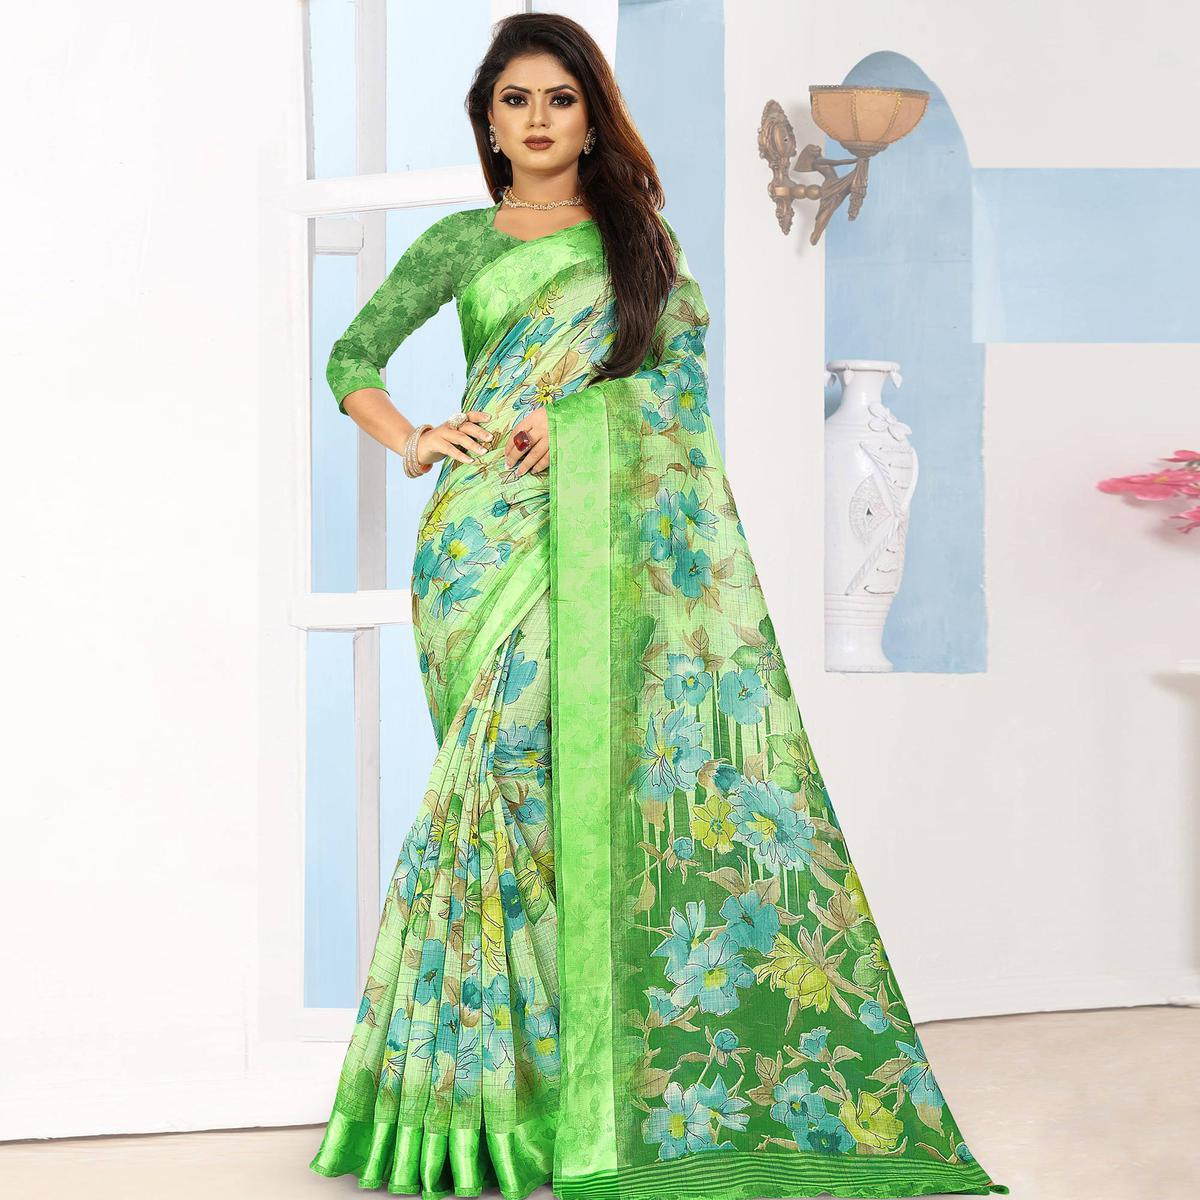 Flamboyant Green Colored Casual Wear Floral Printed Linen Saree With Satin Patta Border